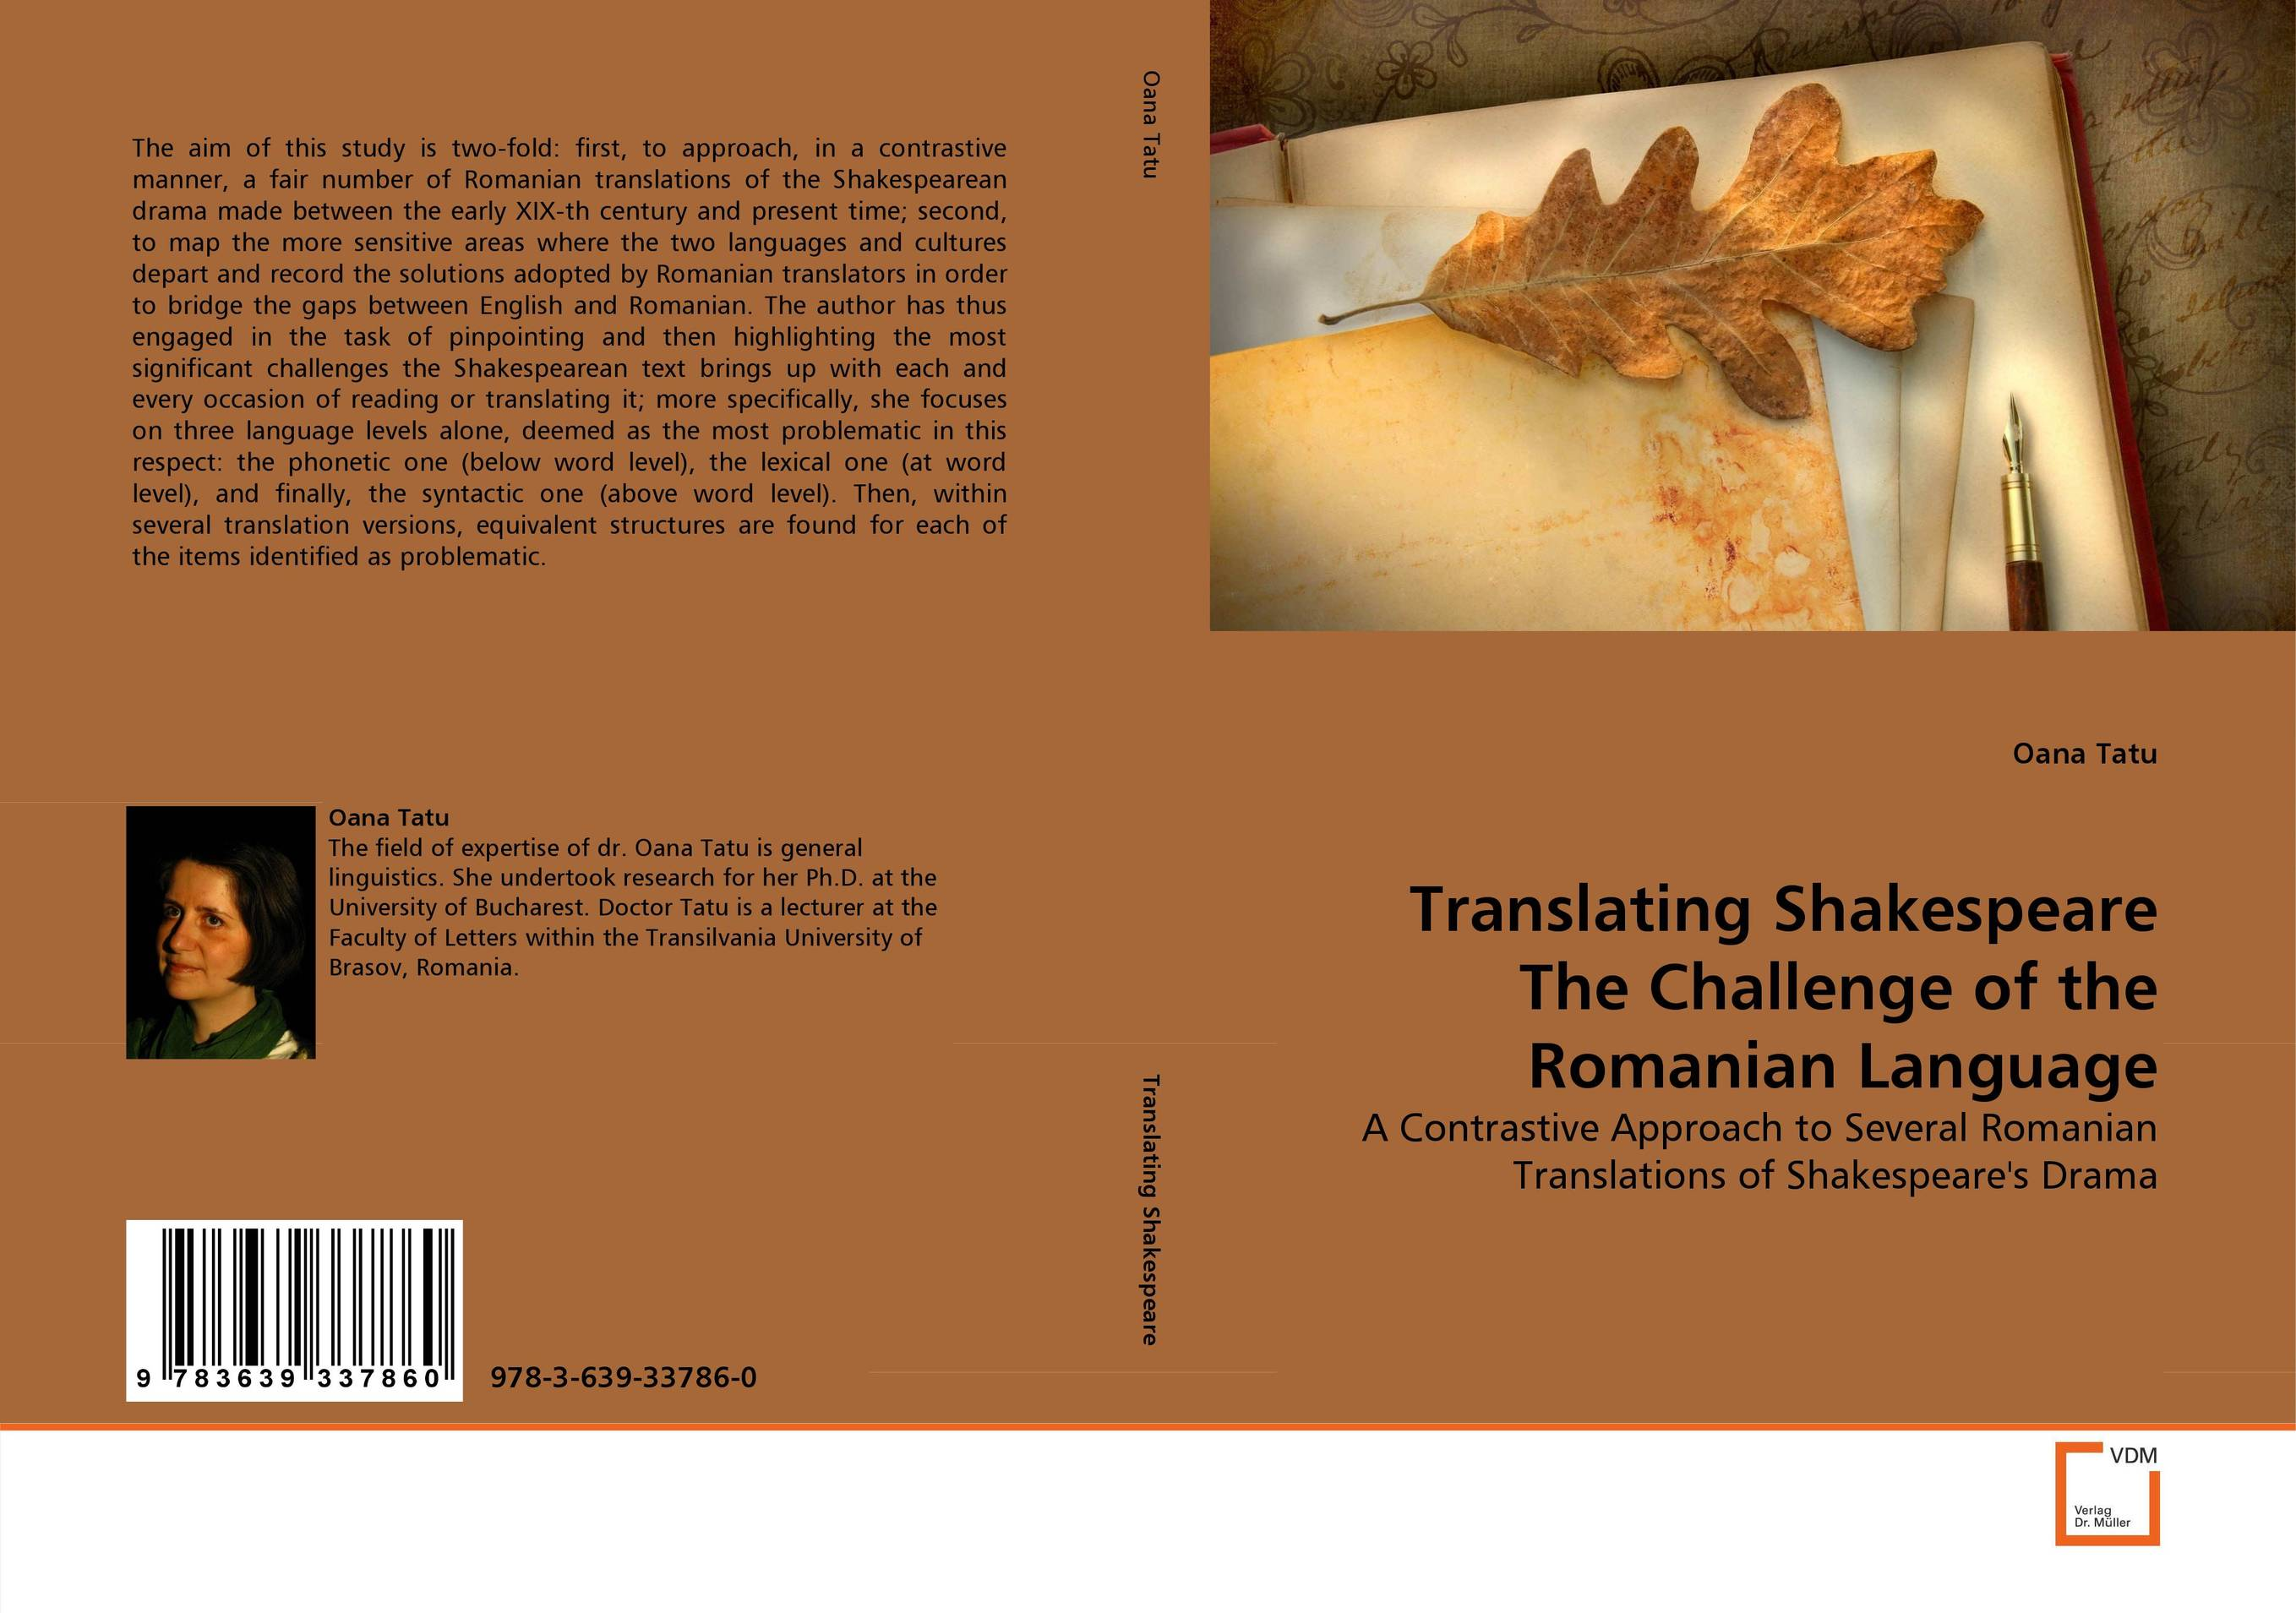 Translating Shakespeare The Challenge of the Romanian Language early signs of language shifting